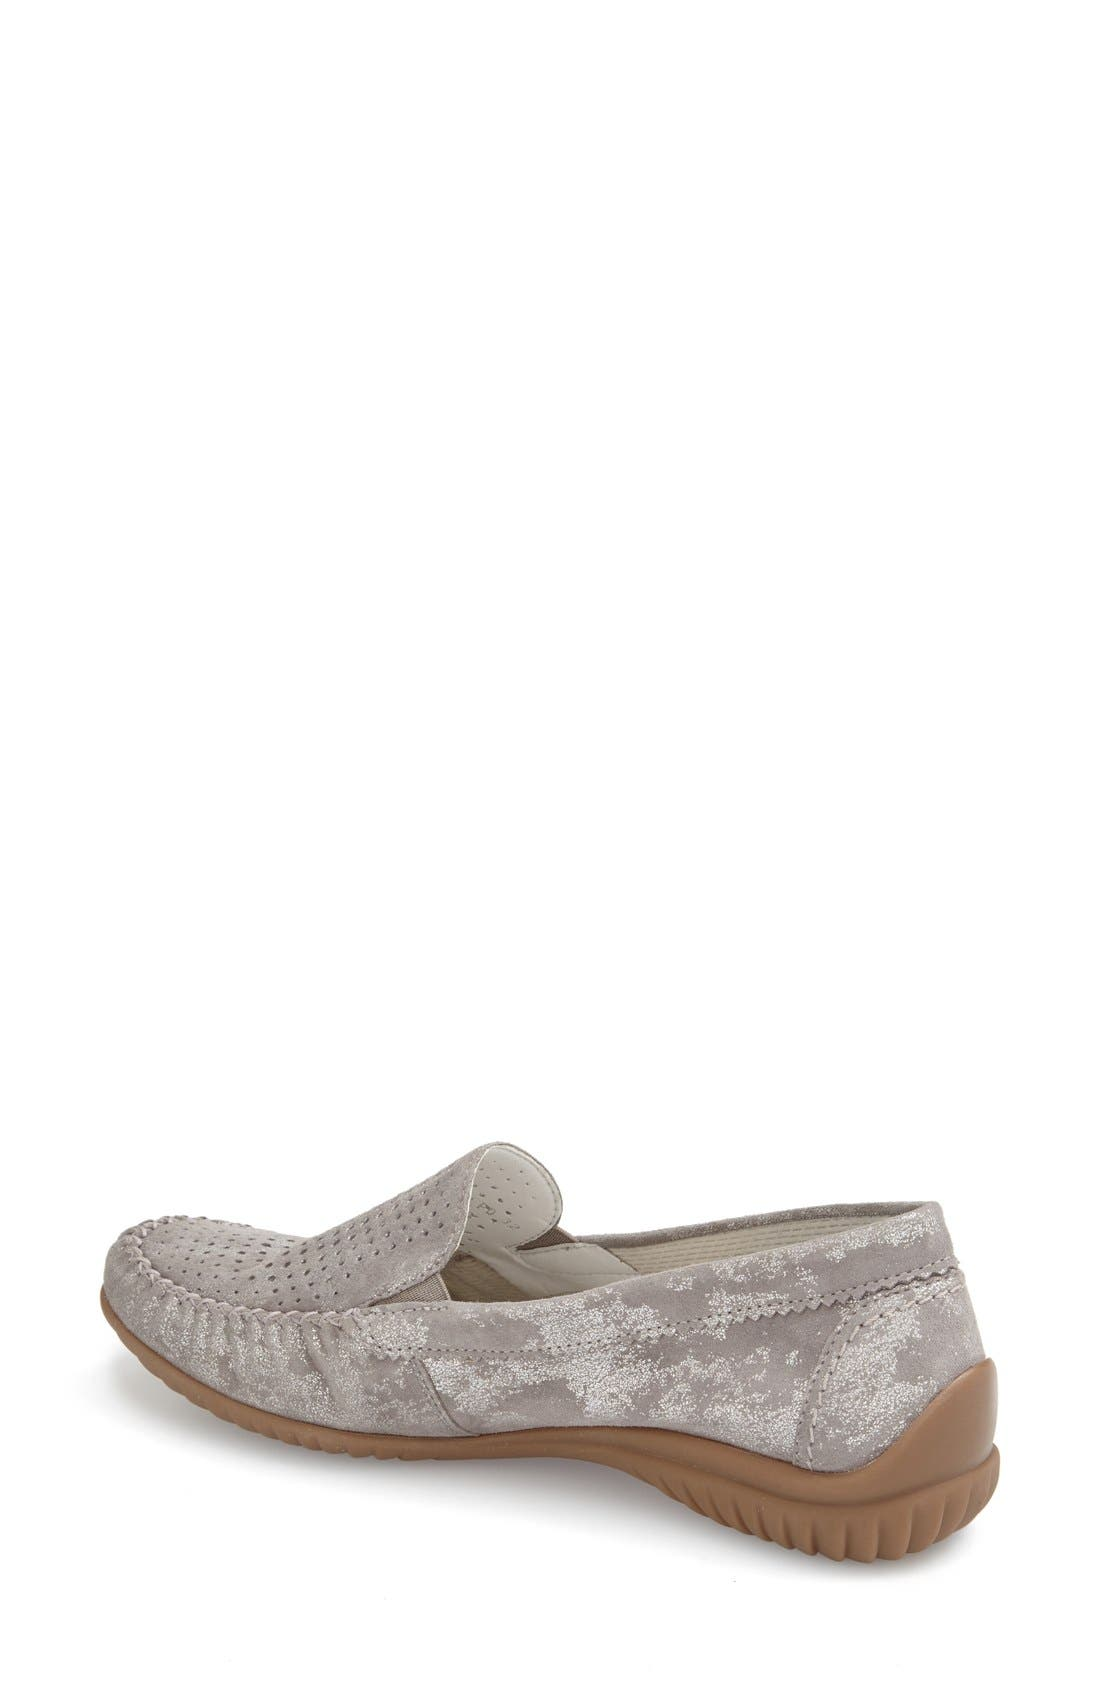 GABOR, Perforated Loafer, Alternate thumbnail 3, color, GREY CARUSO LEATHER